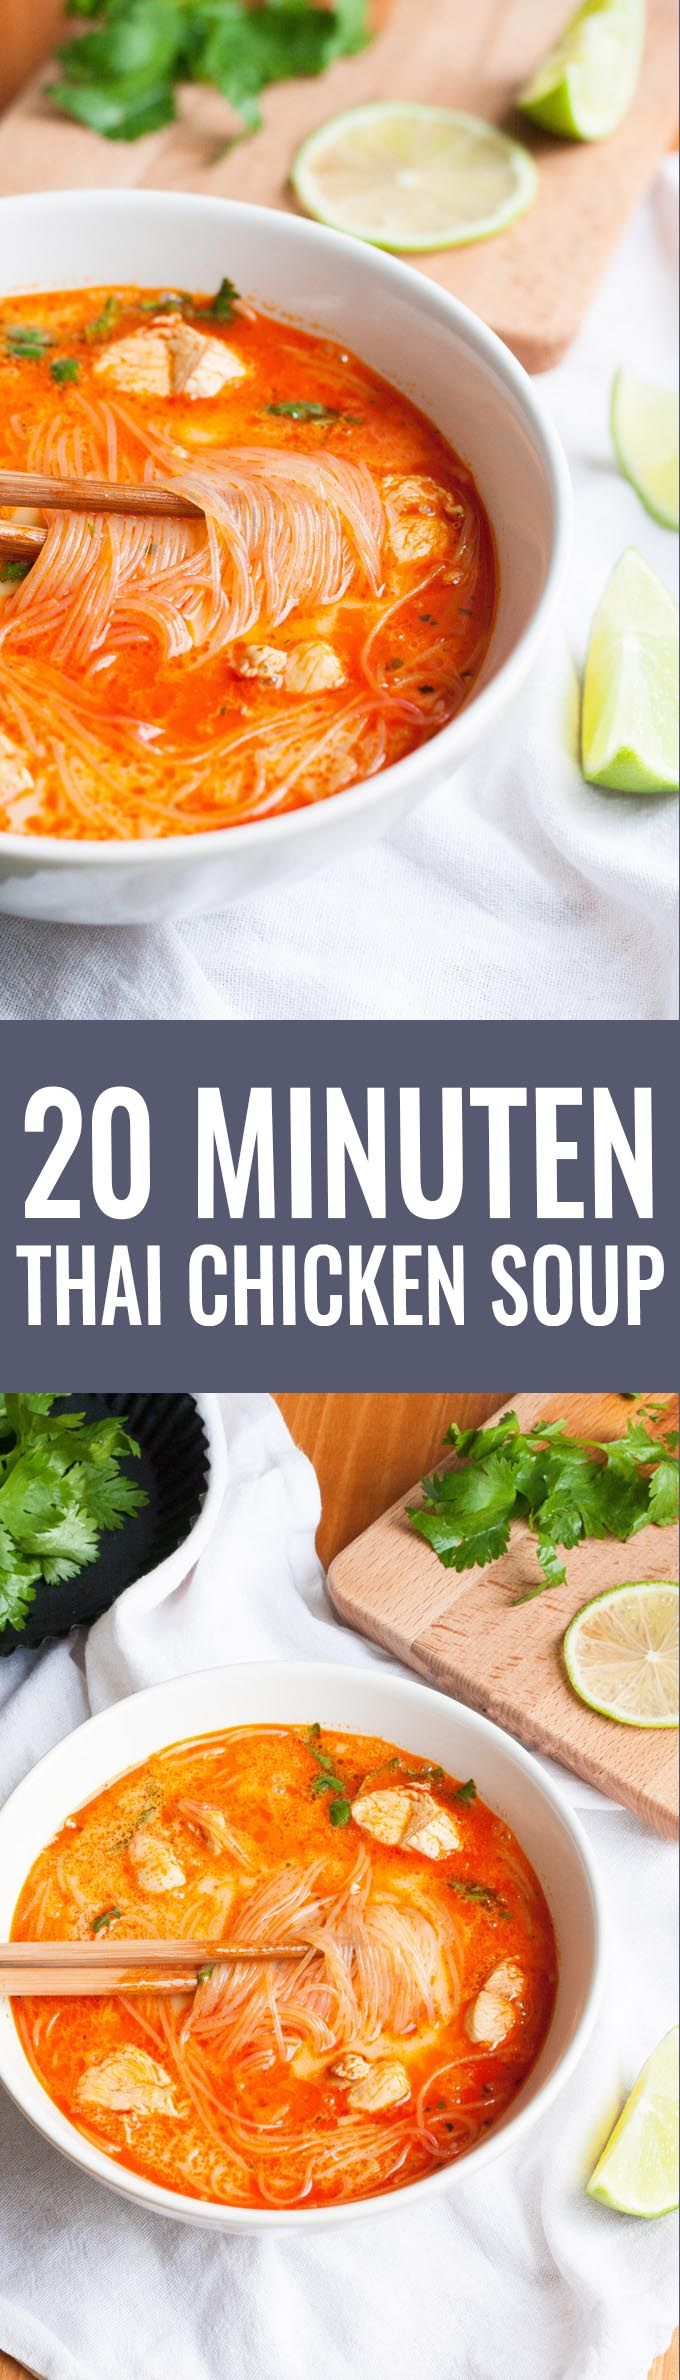 20-Minuten Thai Chicken Soup